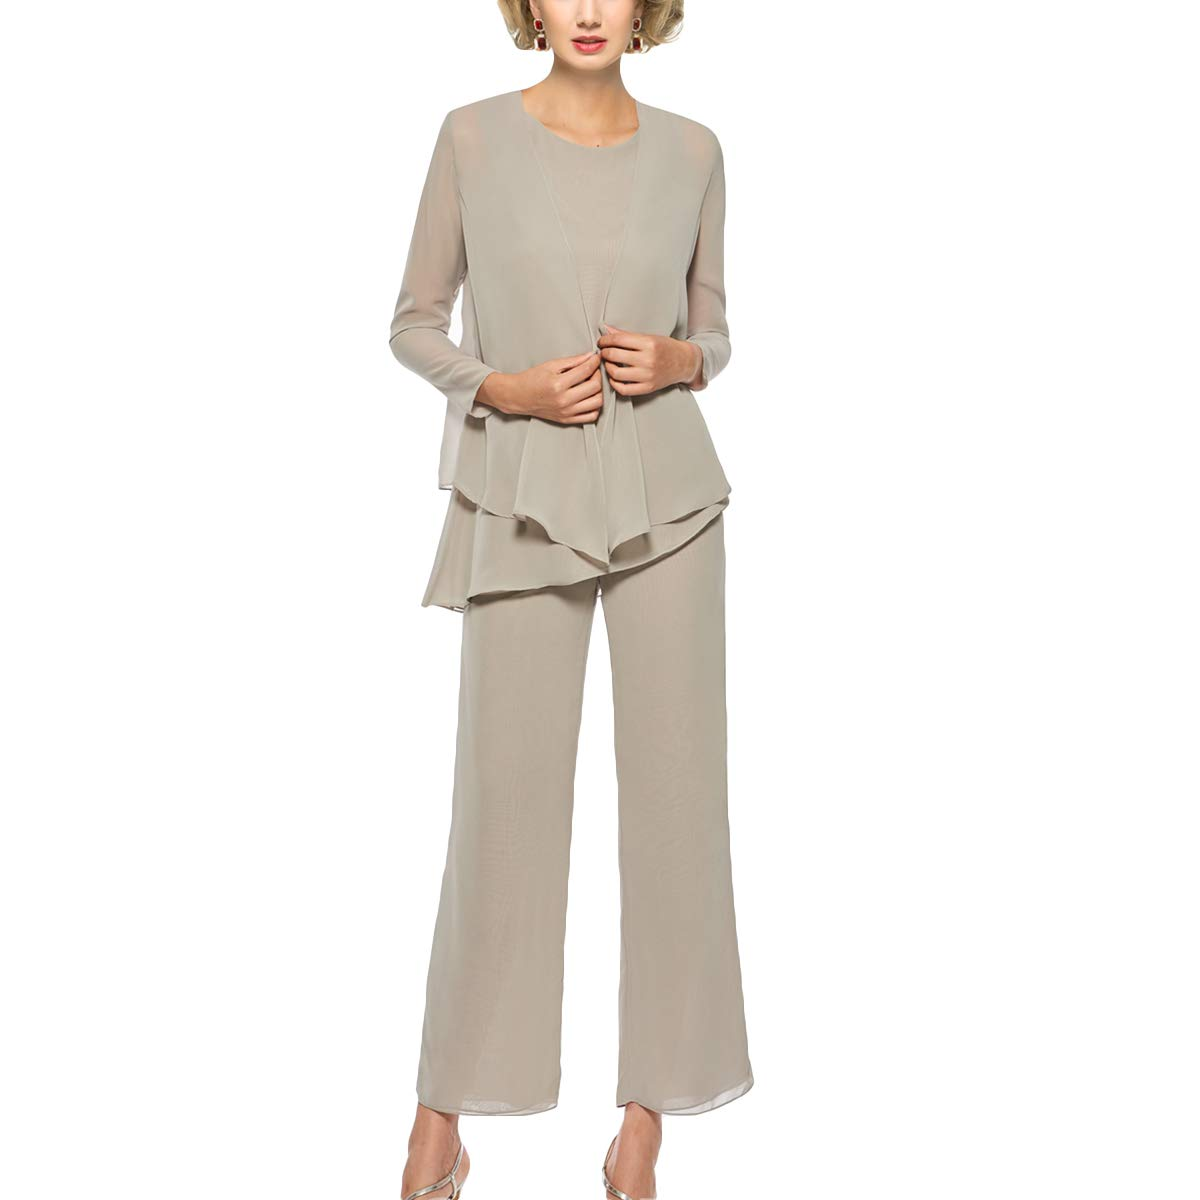 Taupe 24W Mother of The Bride Pant Suits 3 Piece Outfits Formal Womens Evening Long Sleeve Chiffon Dressy Pantsuits for Weddings